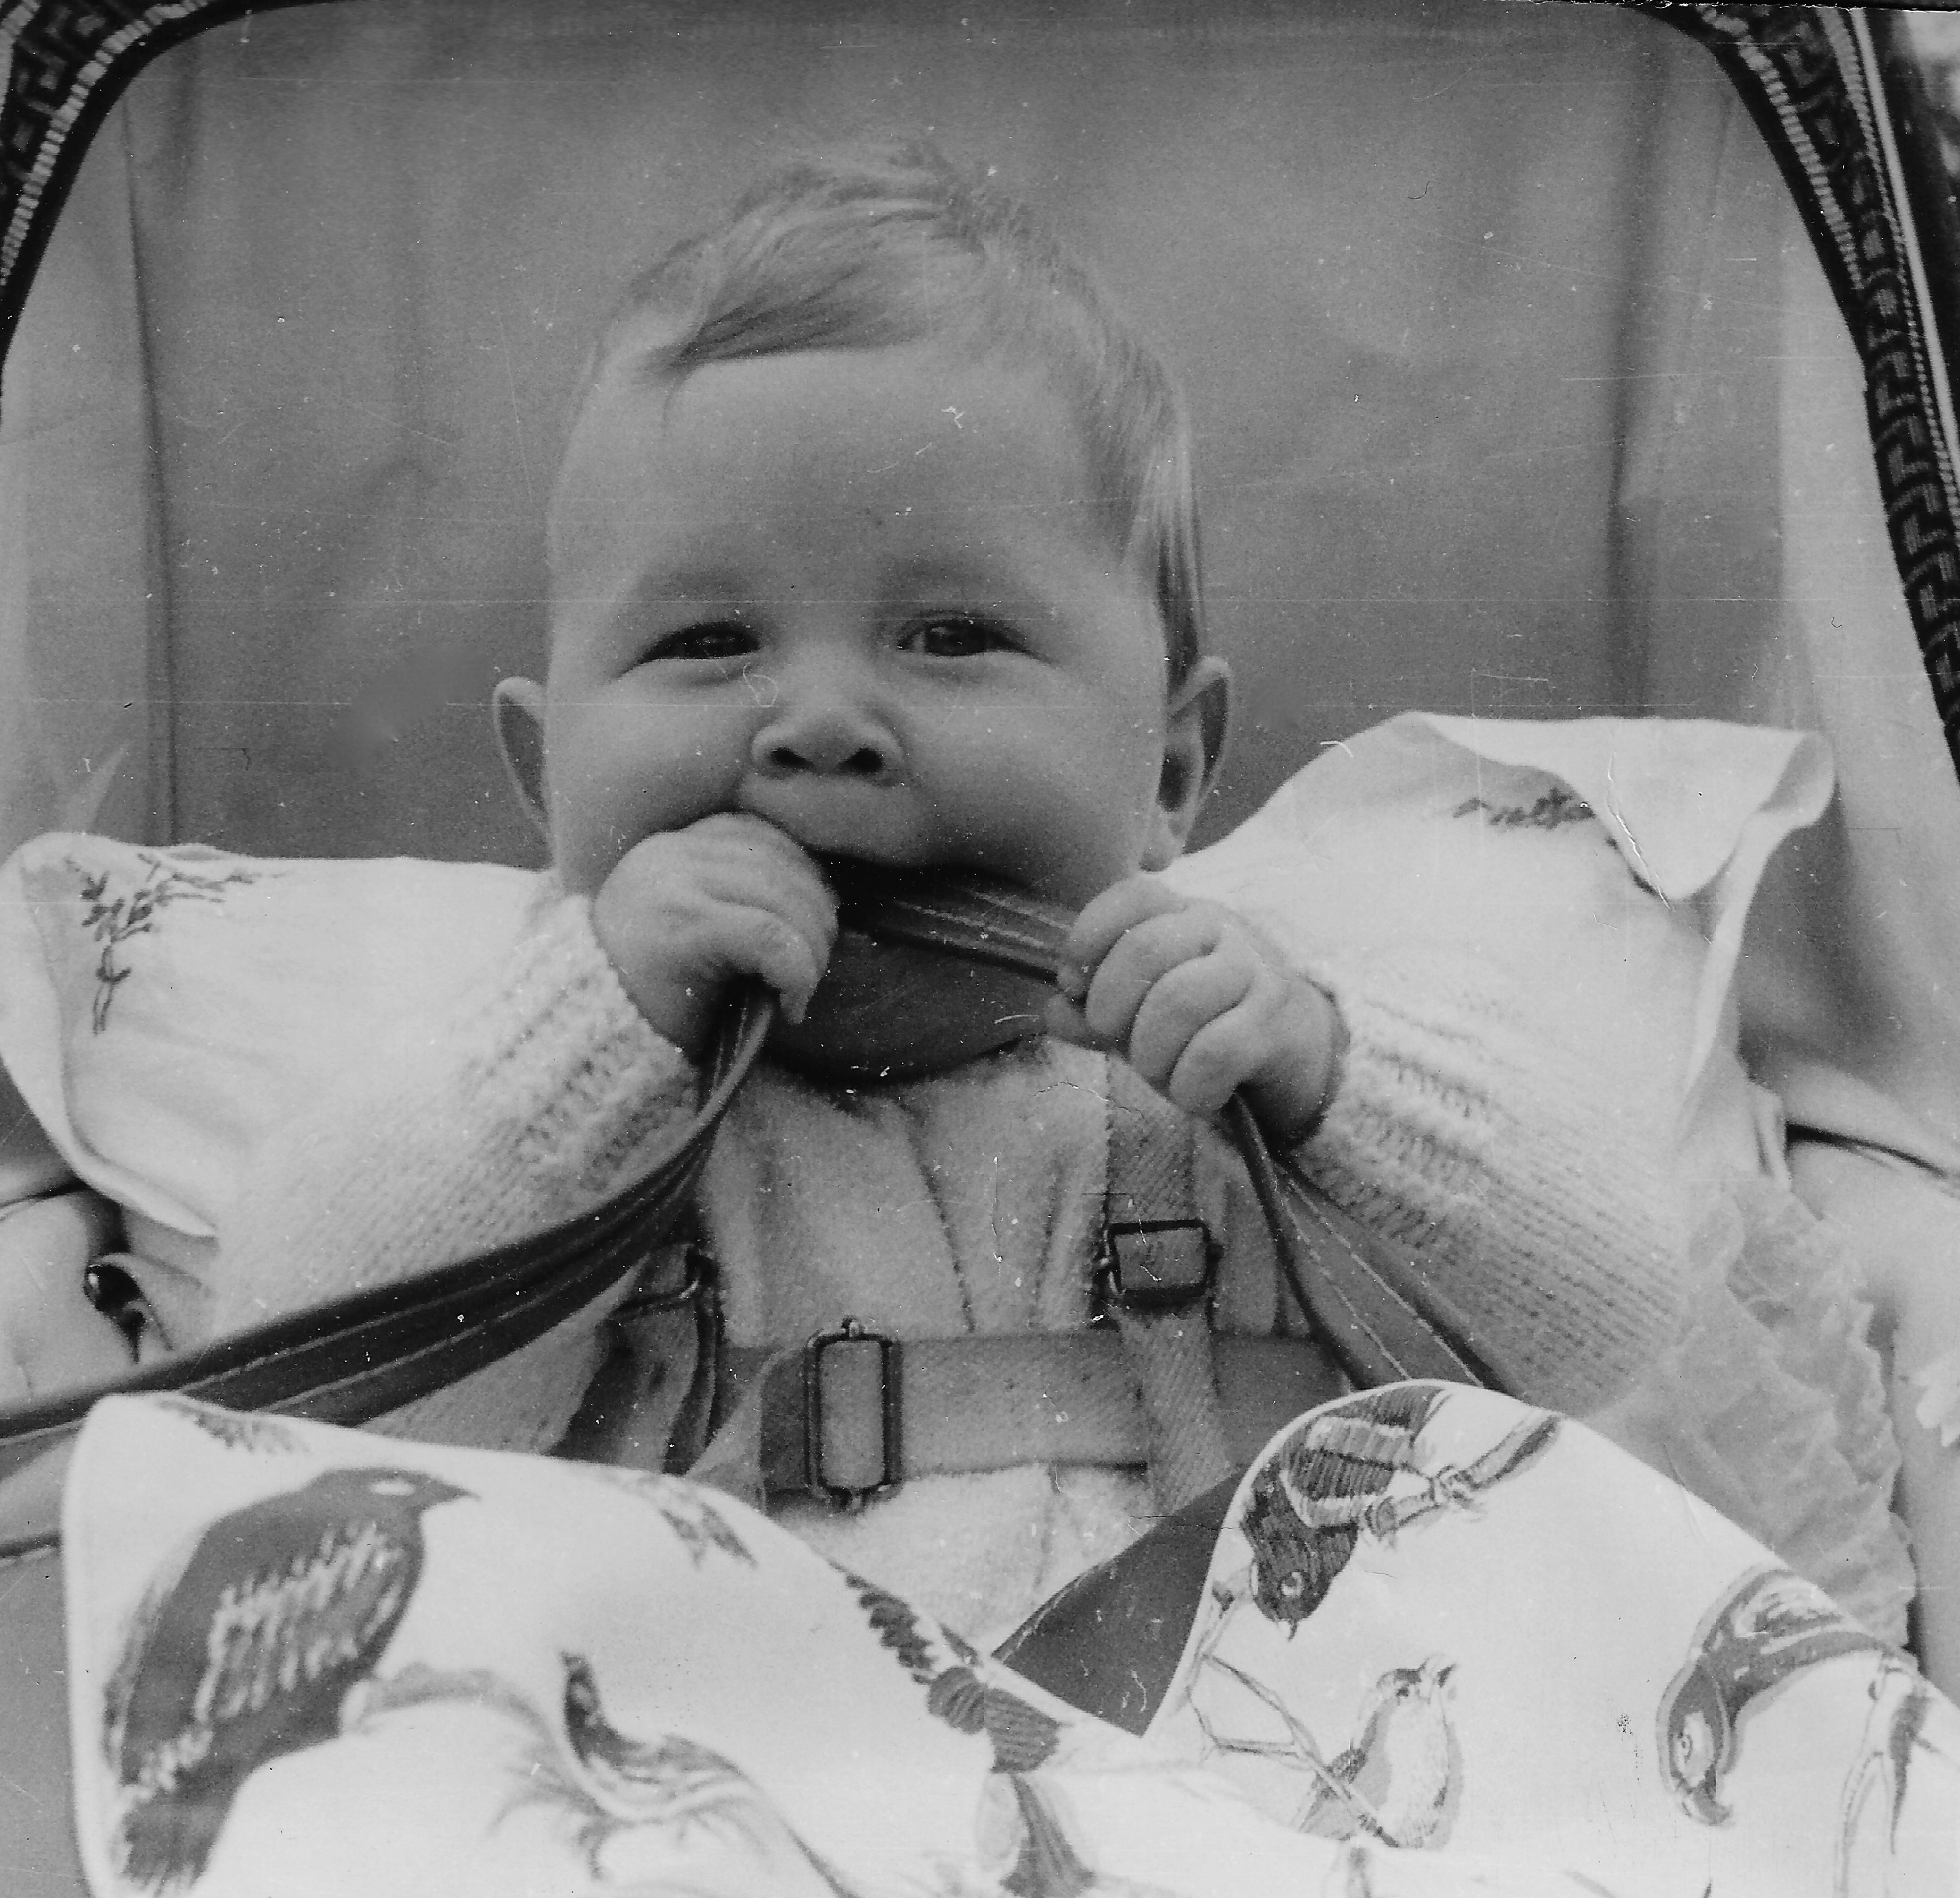 Black and white photograph of Vince Poynter in a pram chewing on a strap